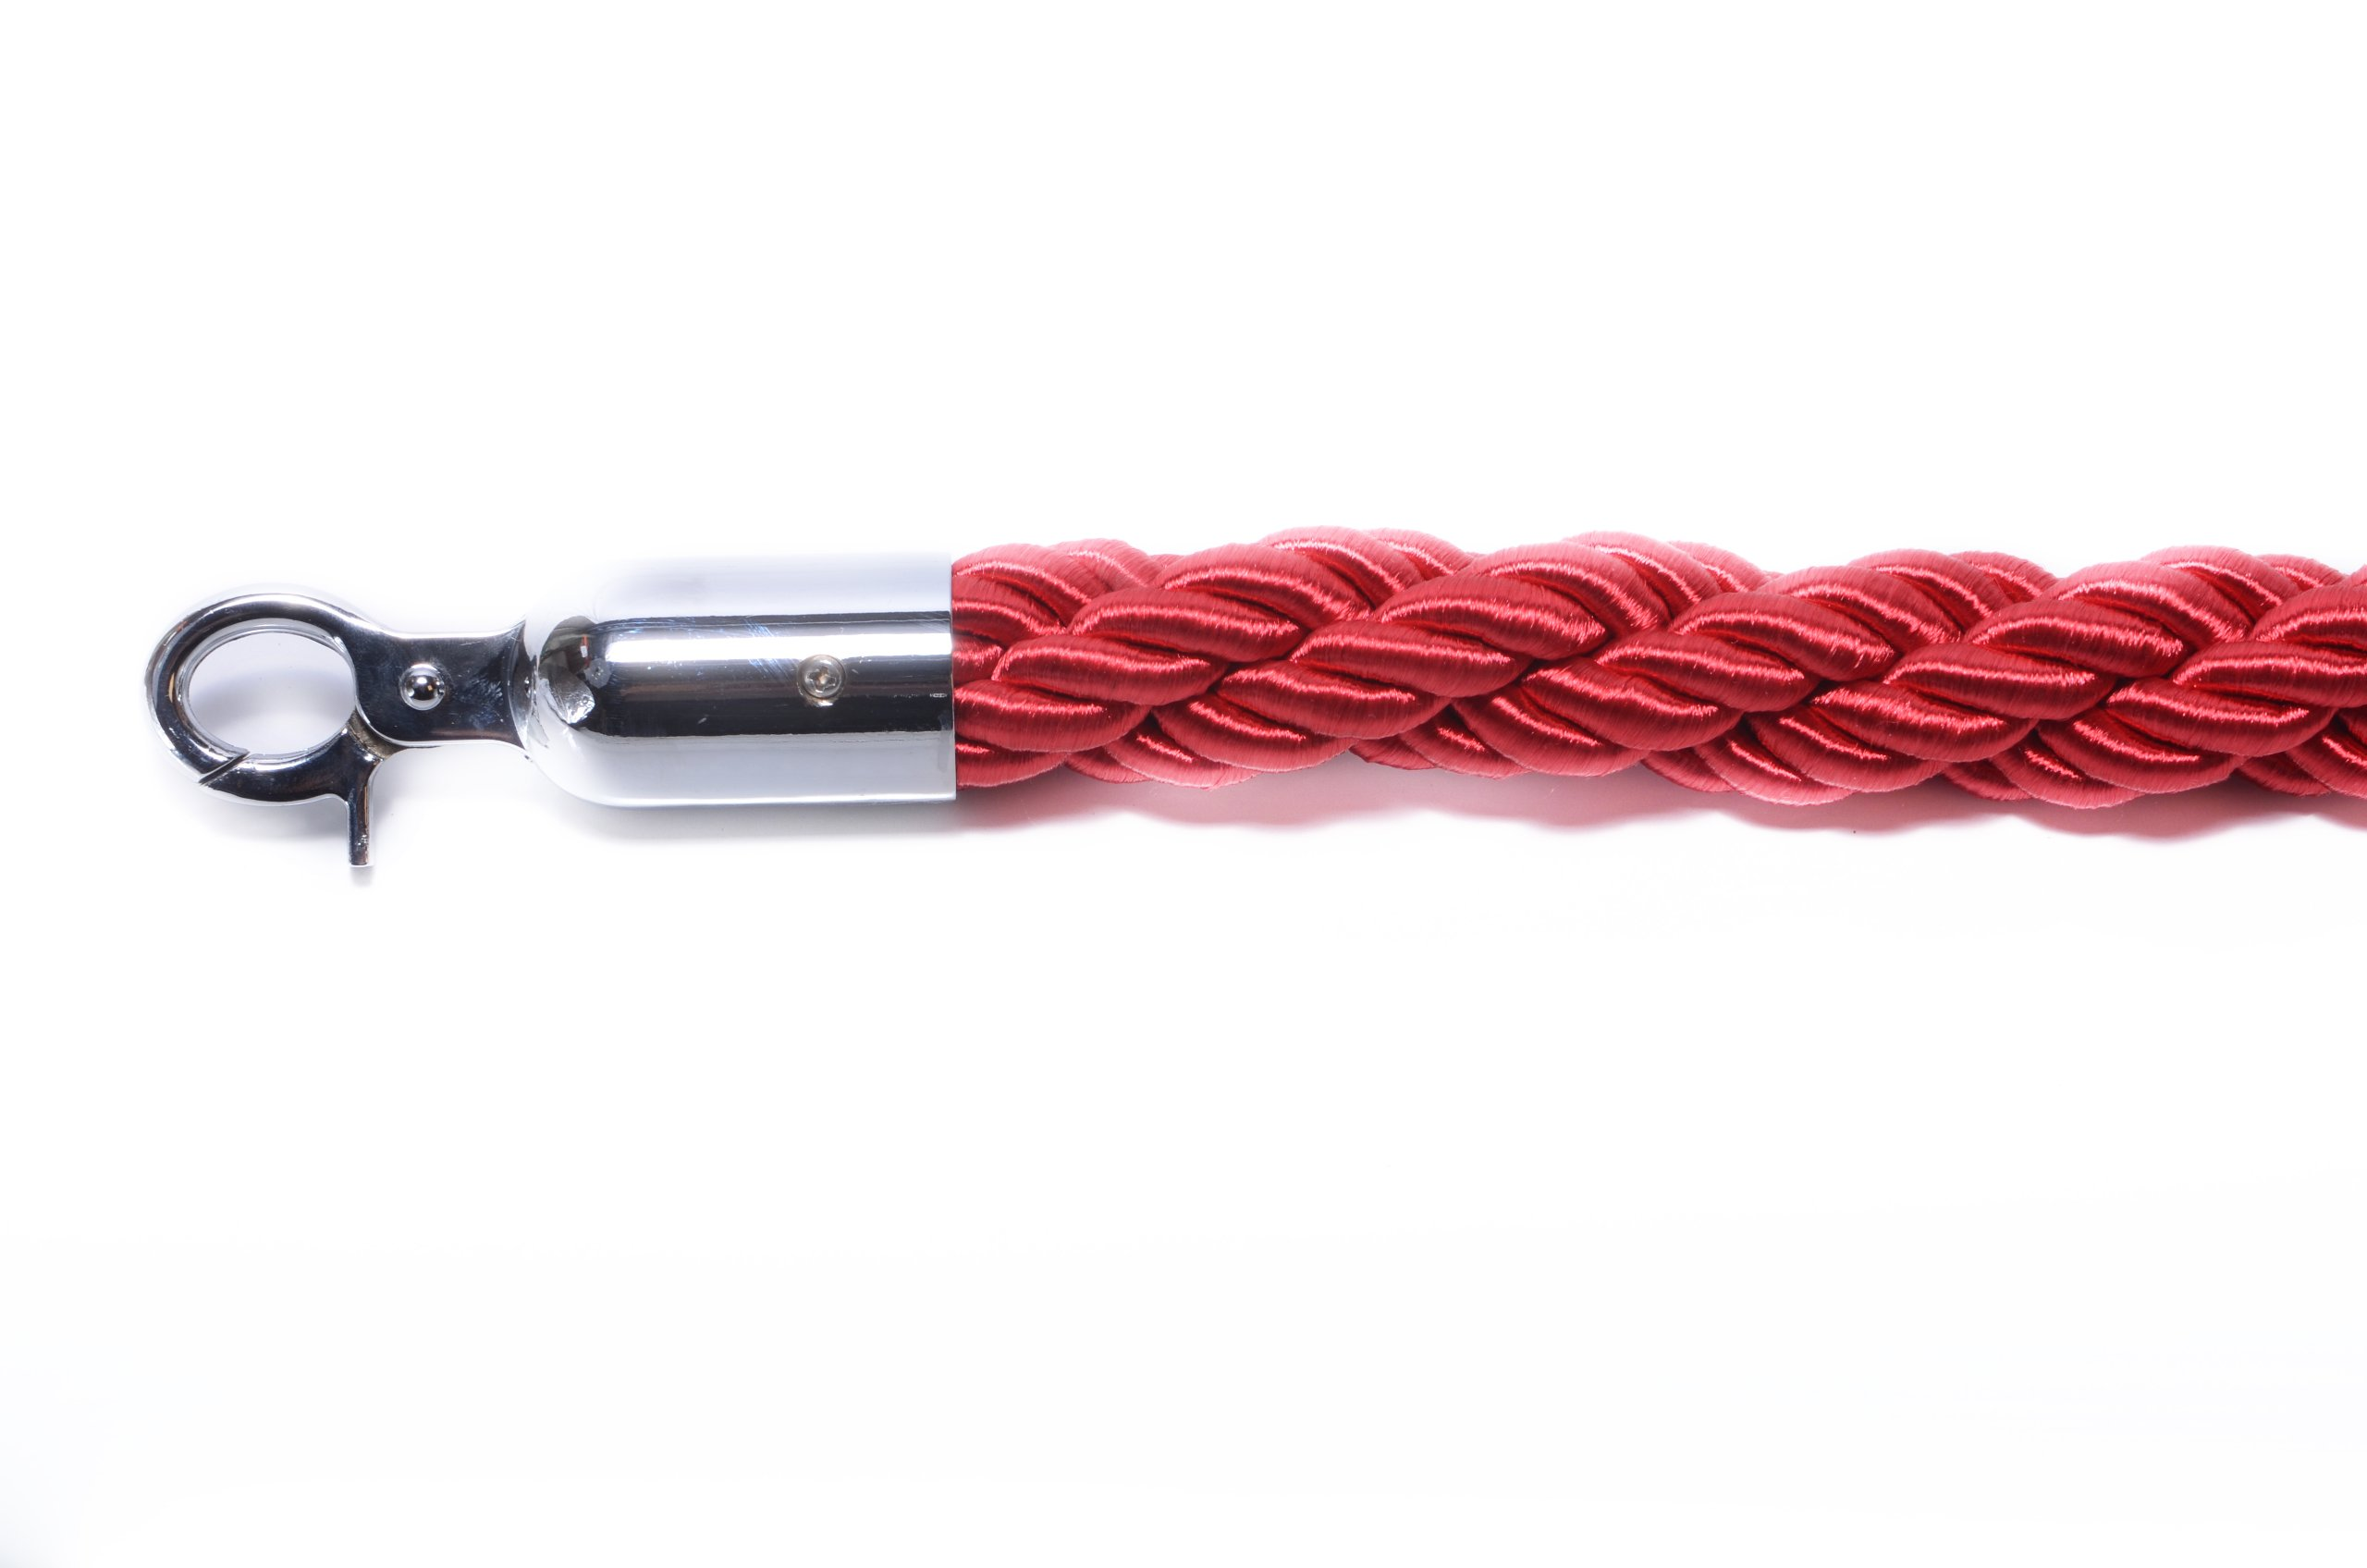 VIP Crowd Control 1771 72 in. Braided Rope with Mirror Hook - Red